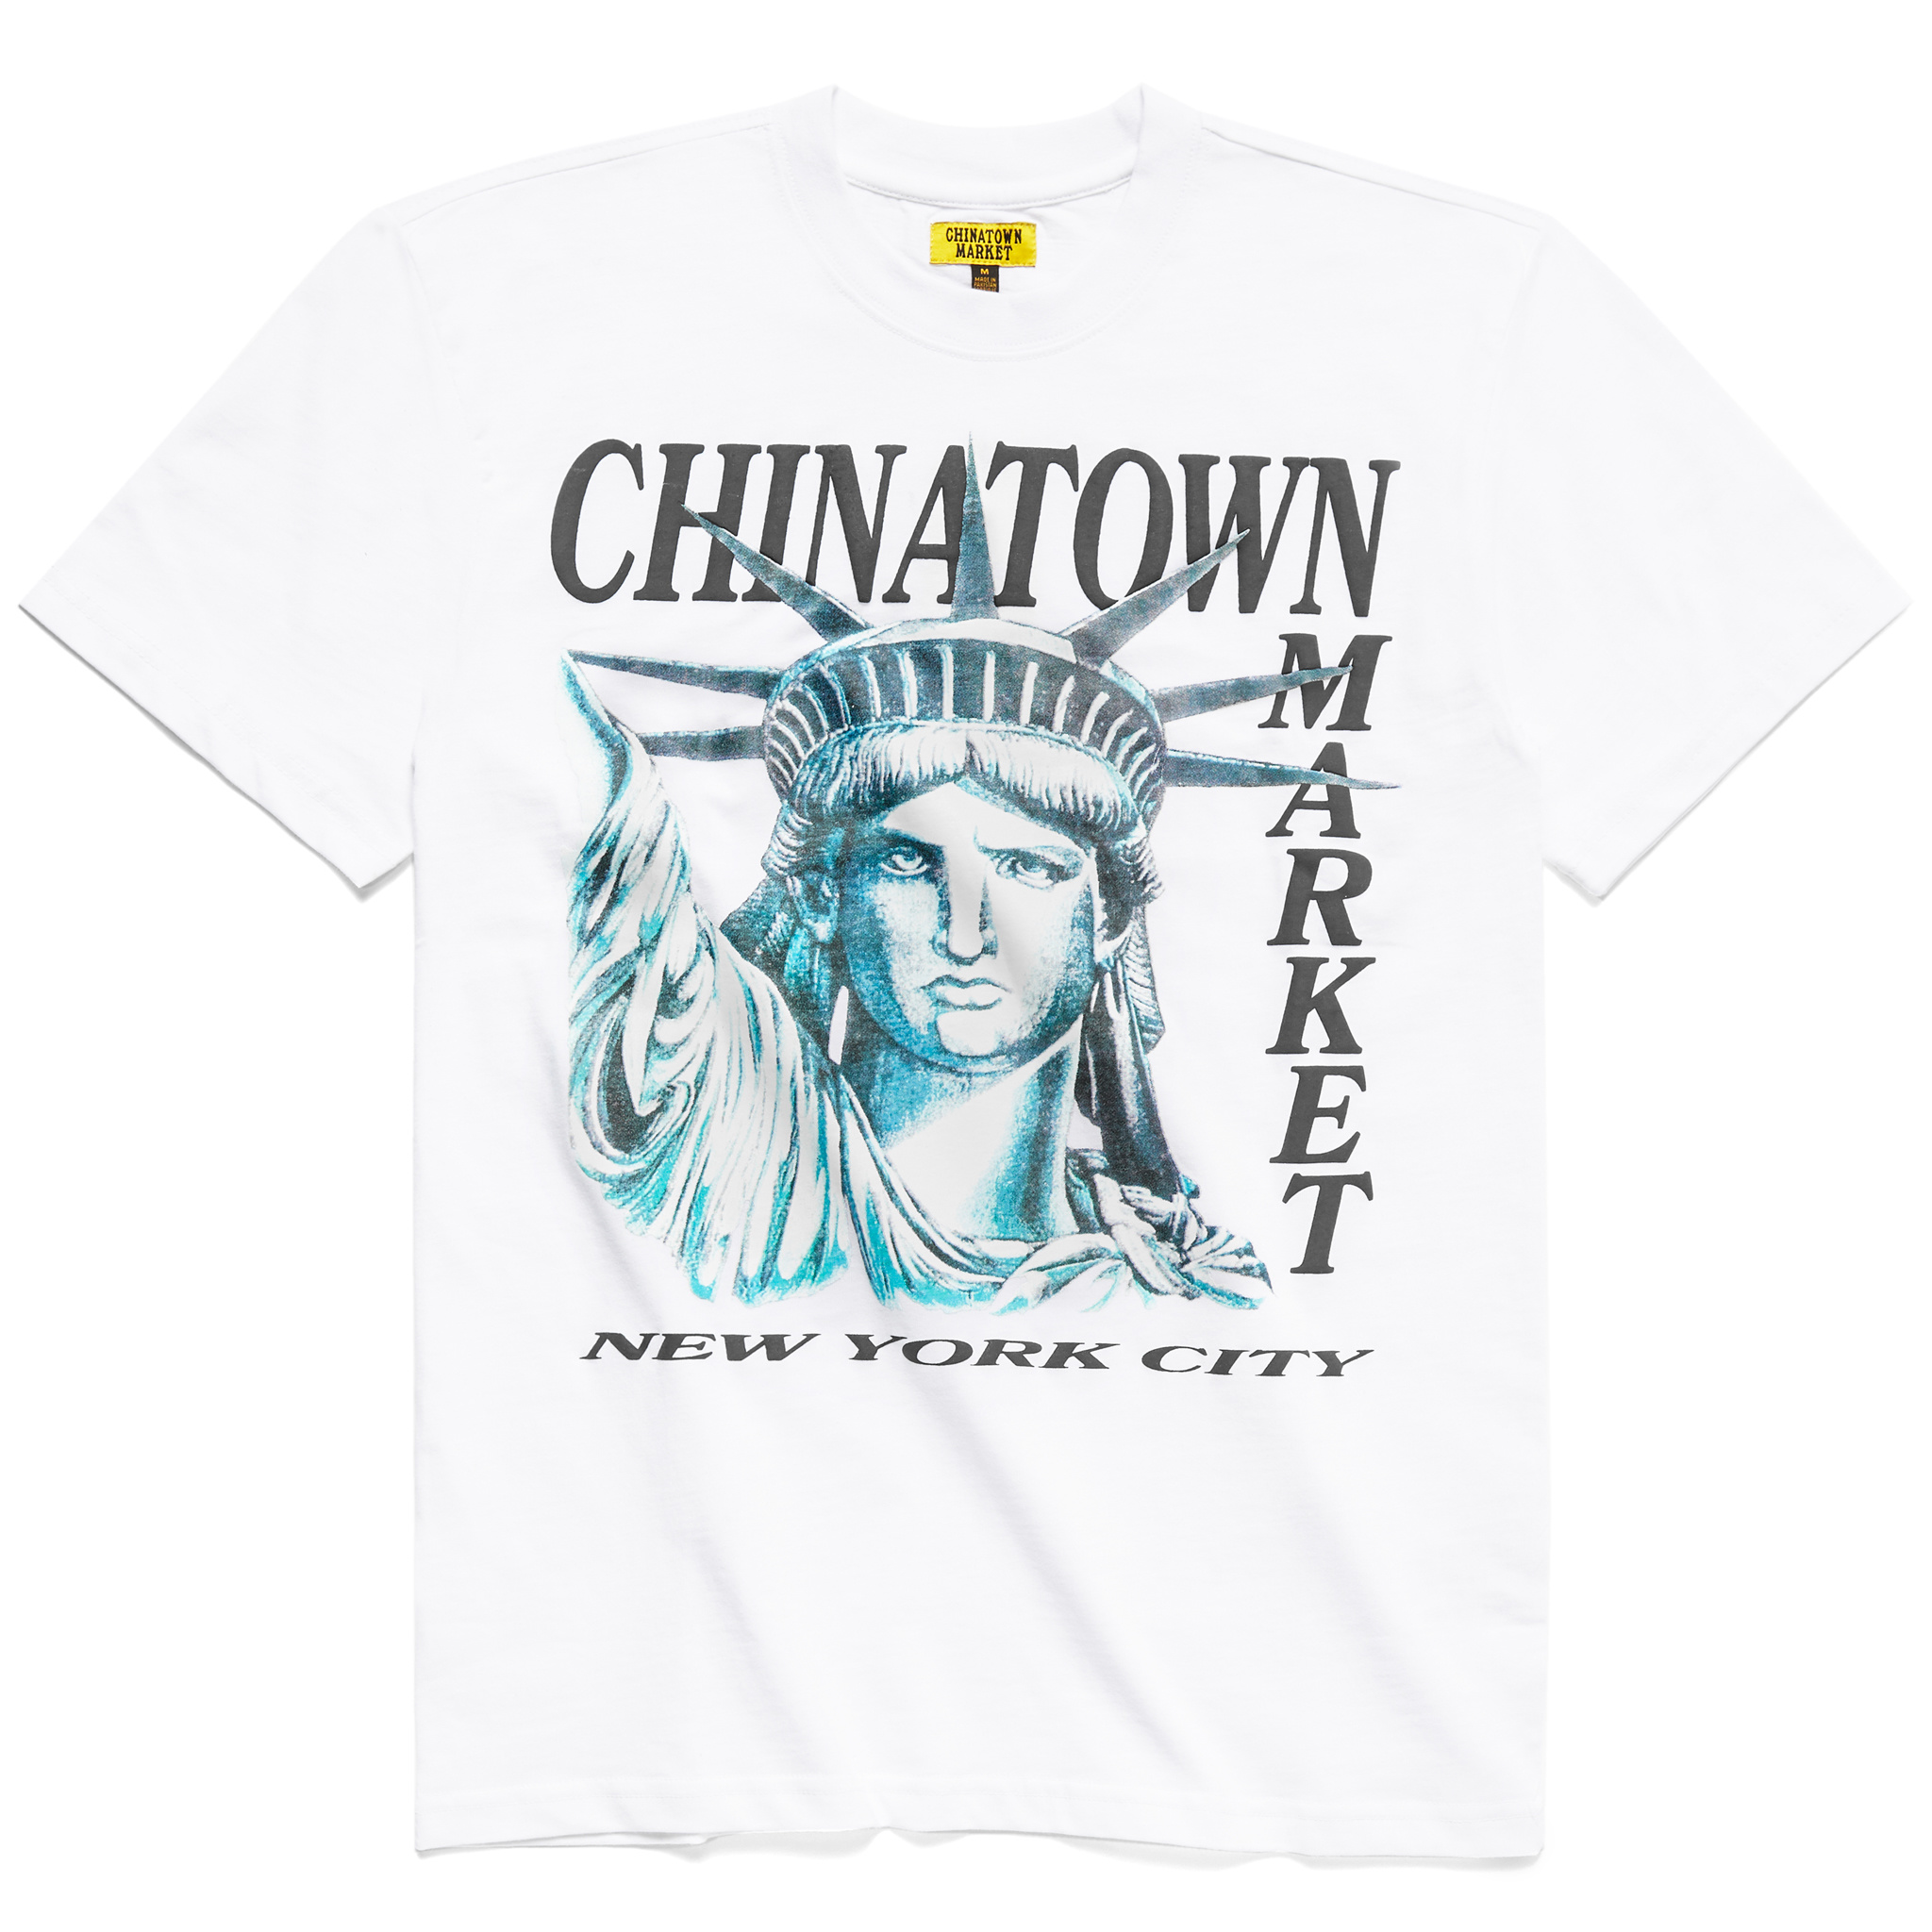 Chinatown Market Chinatown Nyc Tee All The Right